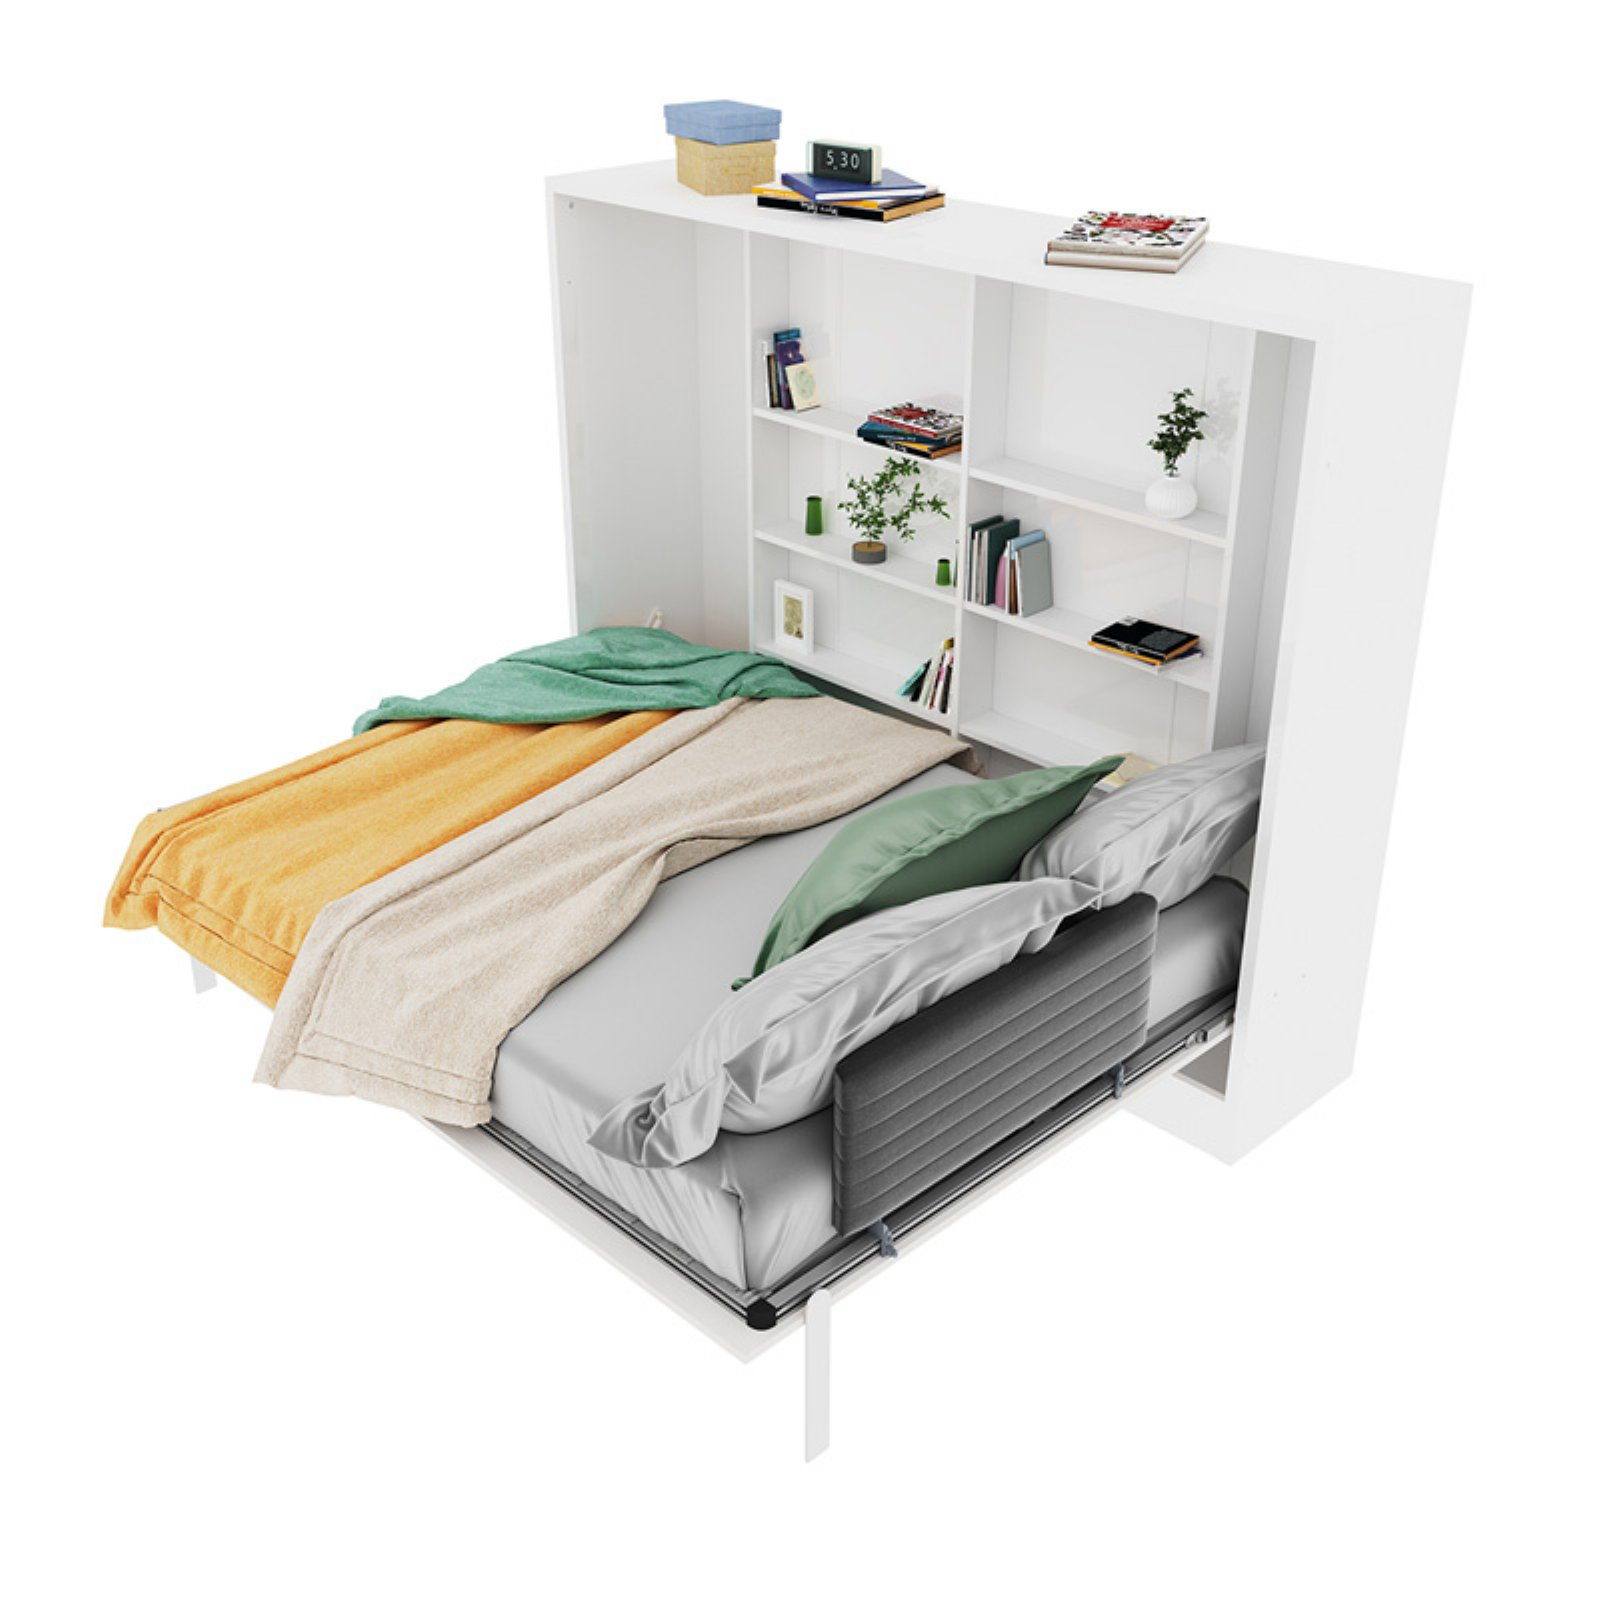 Multimo Spazio T Wall Bed with Table